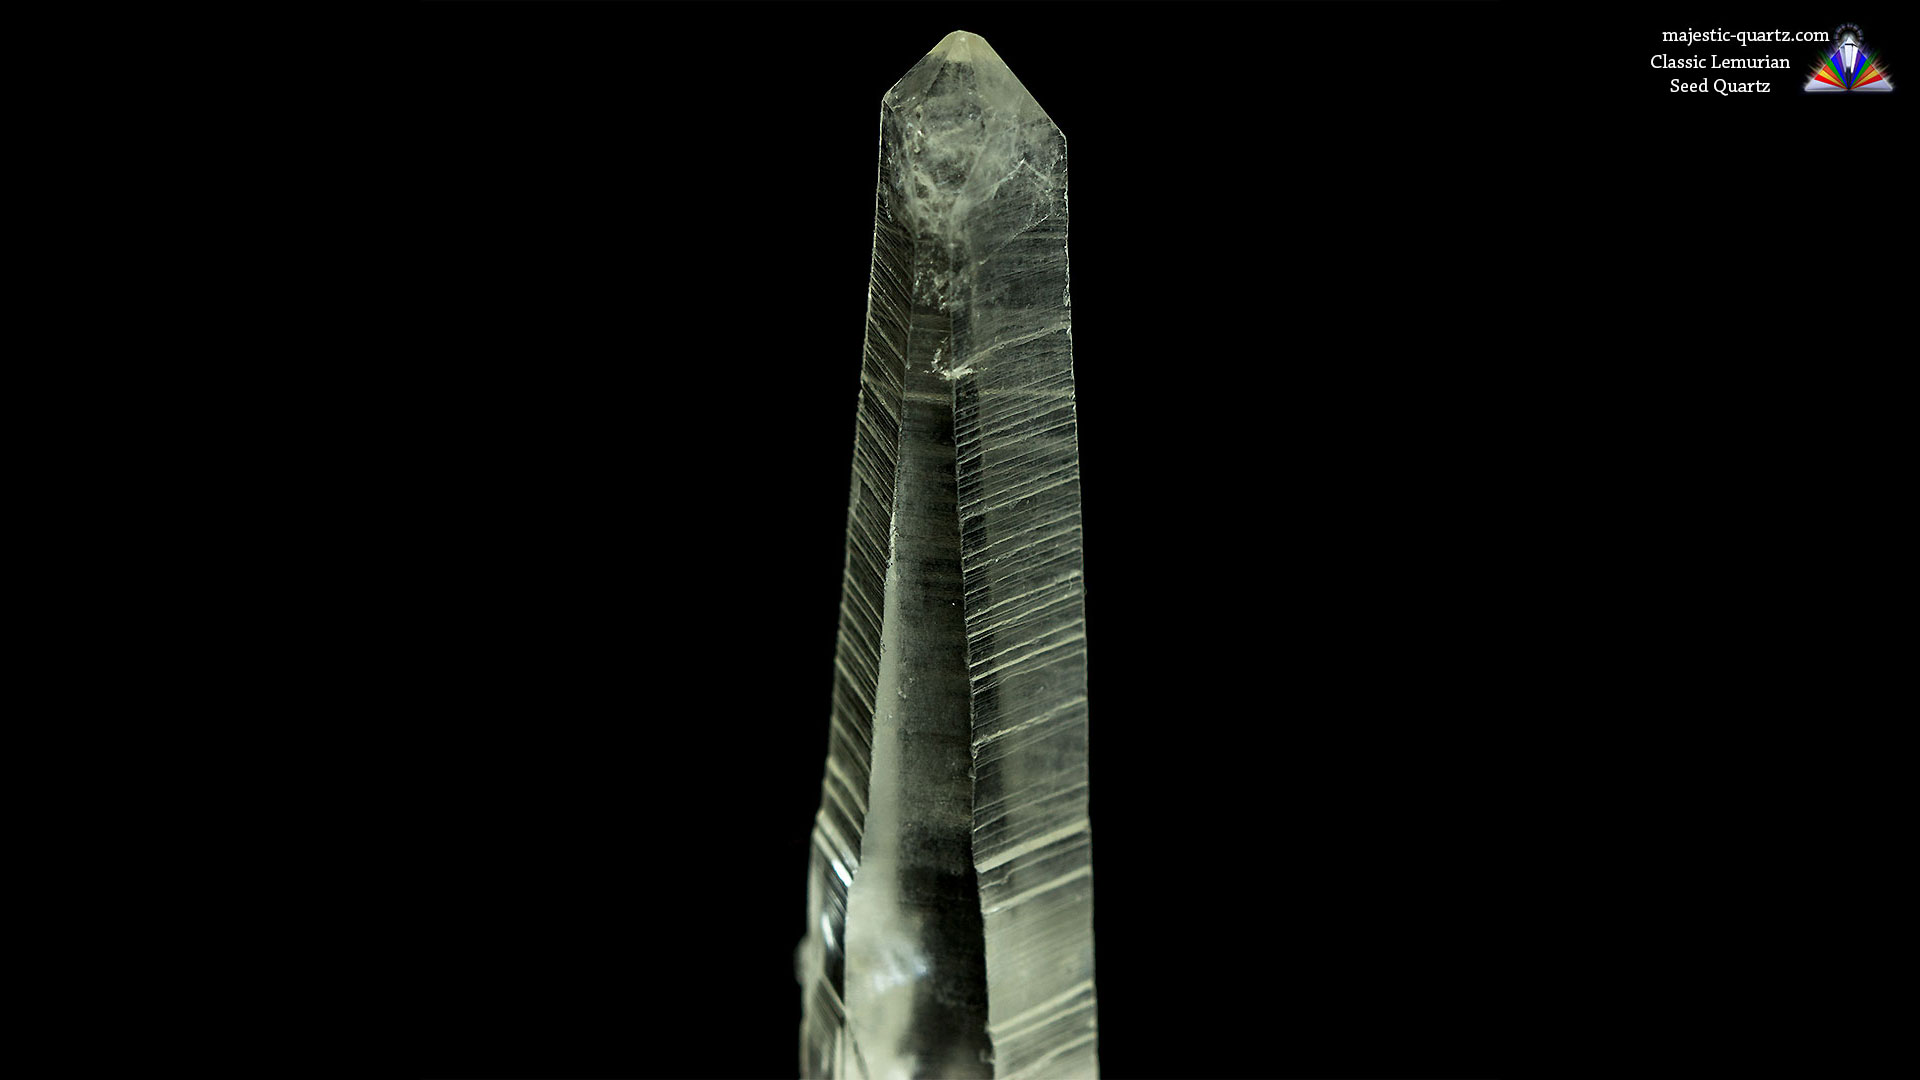 Lemurian Seed Quartz Properties and Meaning + Photos